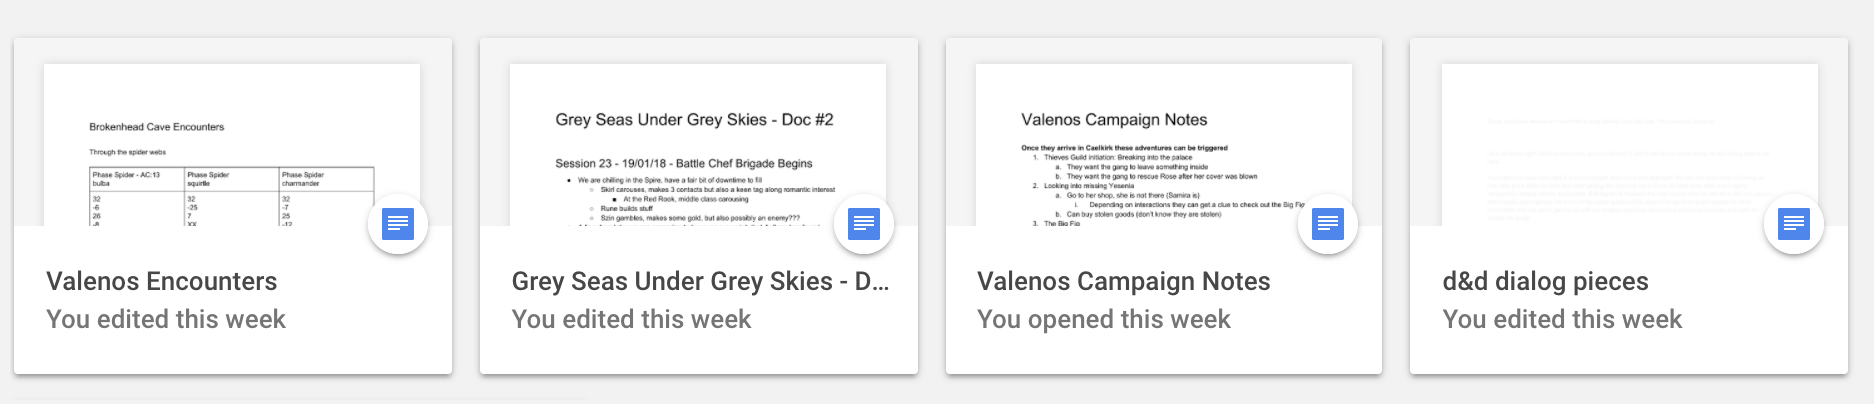 Dungeons And Dragons Character Sheet Google Docs Gastronomia